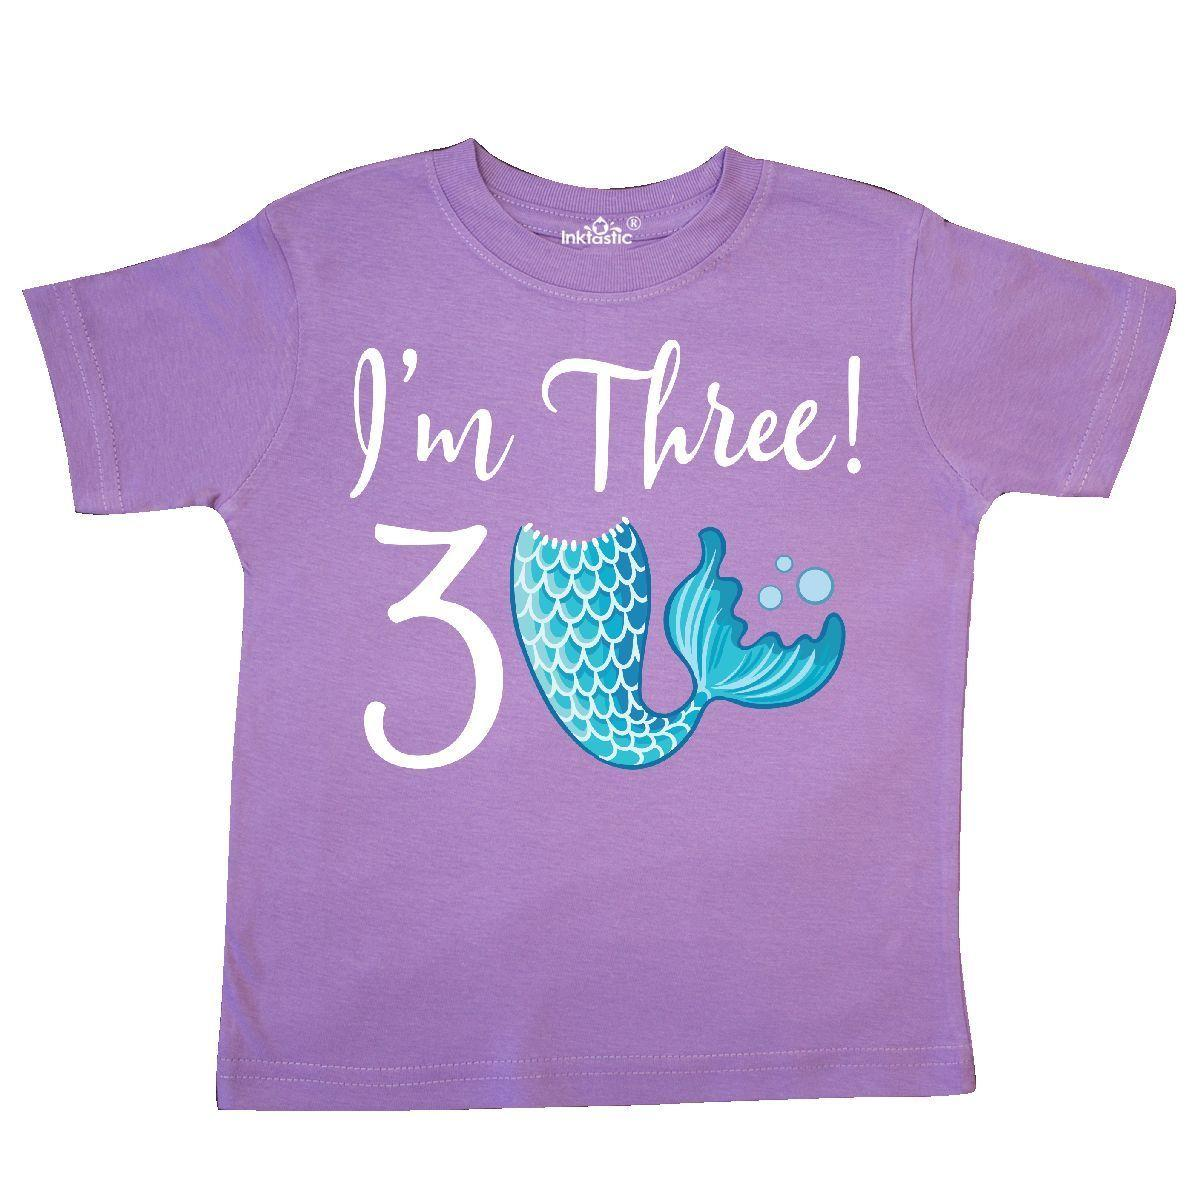 Inktastic 3rd Birthday Girls Mermaid Party Toddler T Shirt 3 Year Old Im Three Funny Unisex Casual Tee Gift Humorous Shirts From Spirit